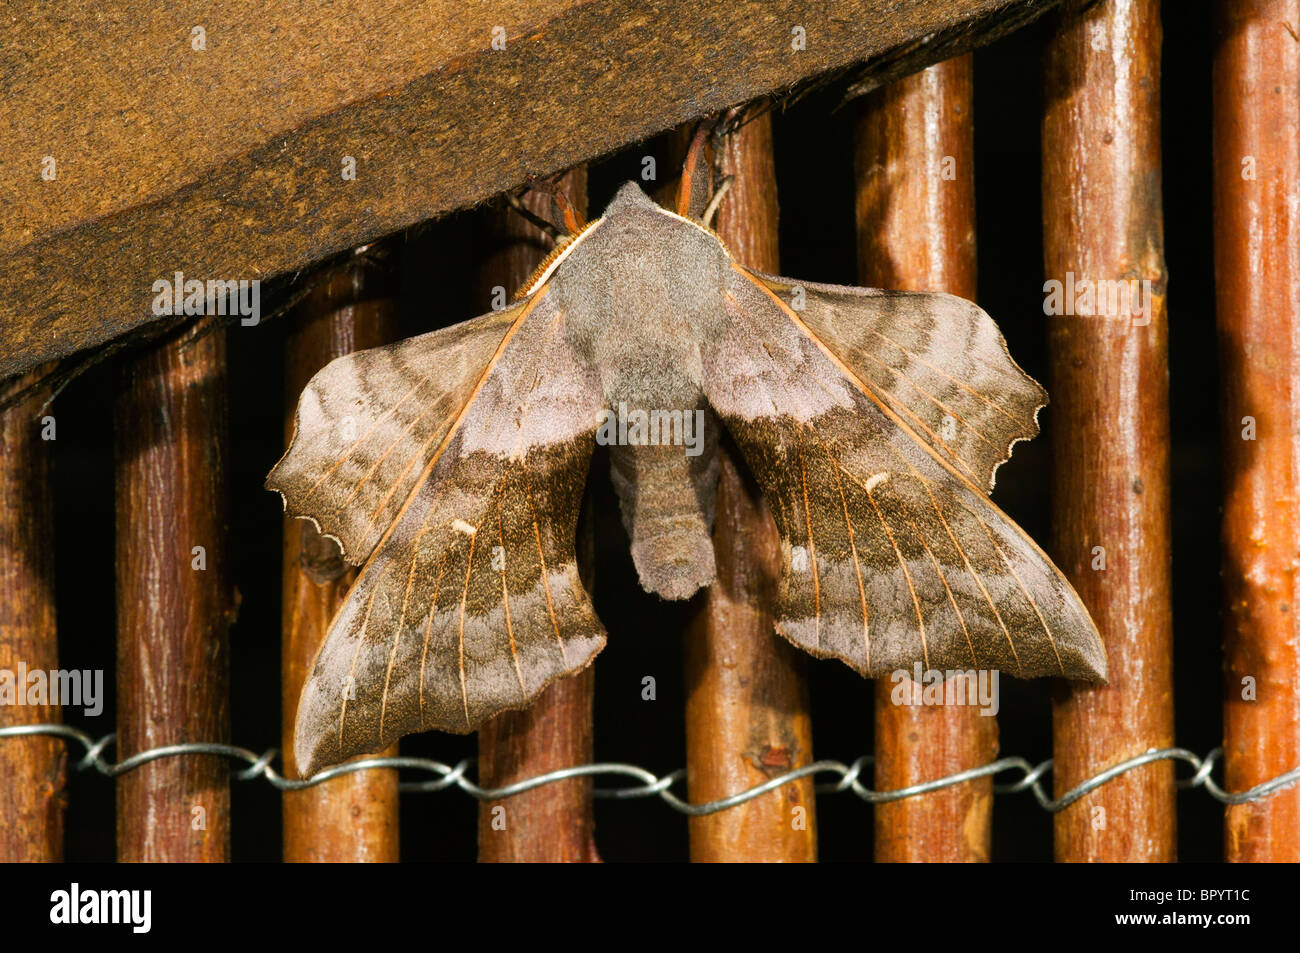 Poplar Hawk Moth, Laothoe populi, on a willow screen in a domestic garden.  Manchester, England, UK - Stock Image